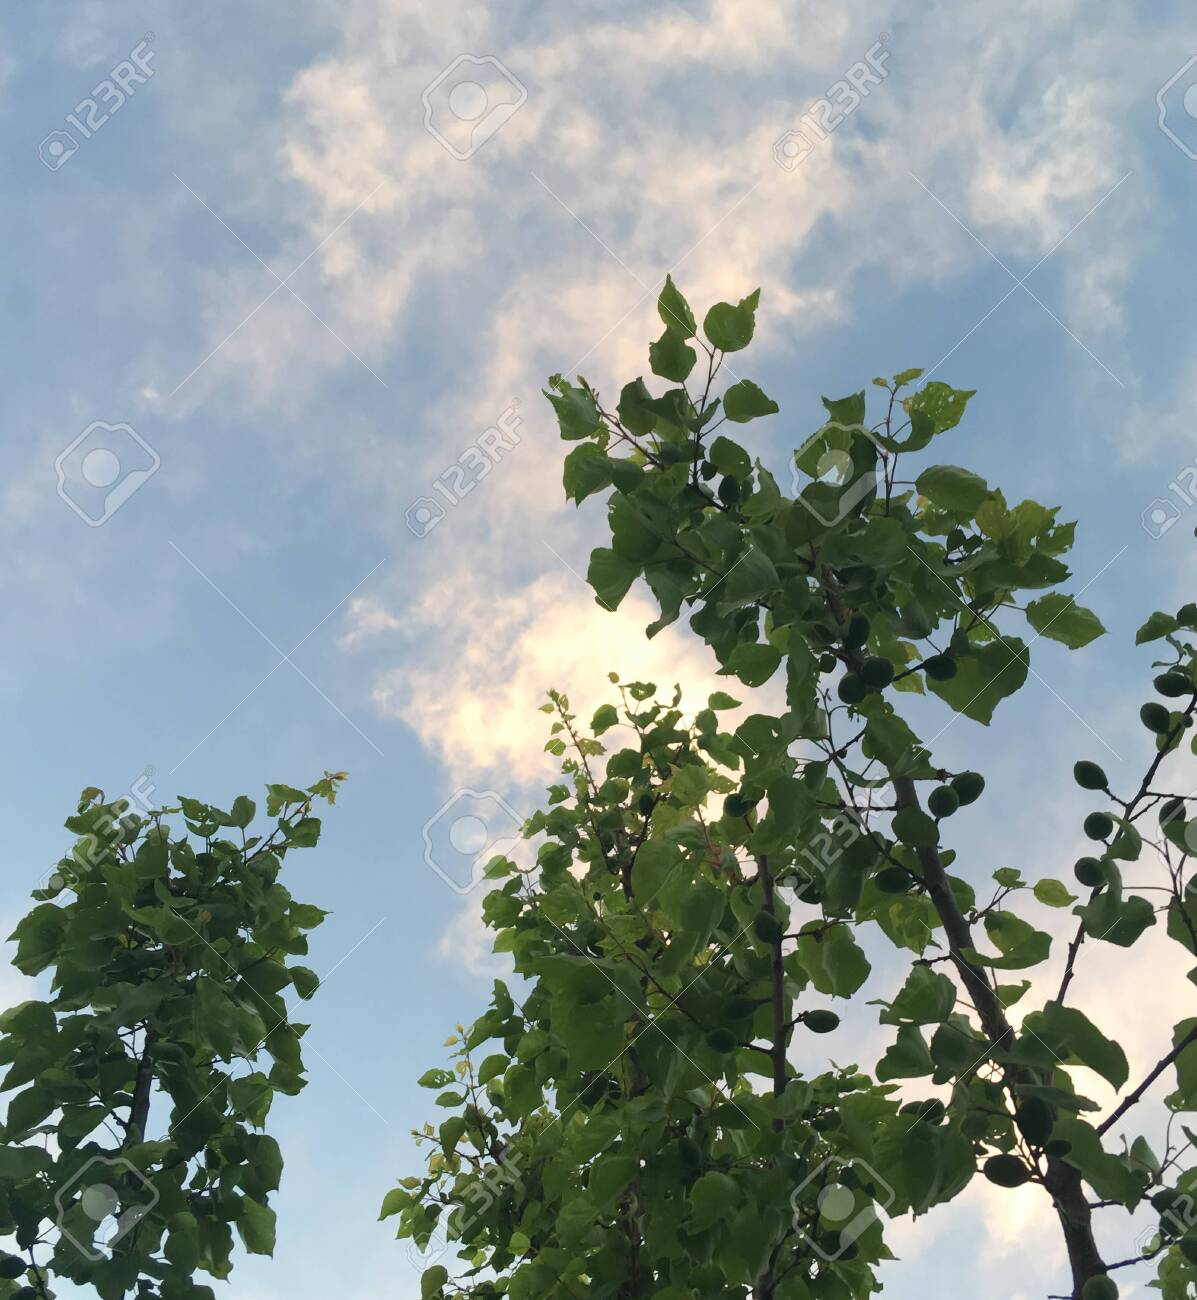 summer garden with green apricot trees against the sky. frame of trees and blue sky - 147701506